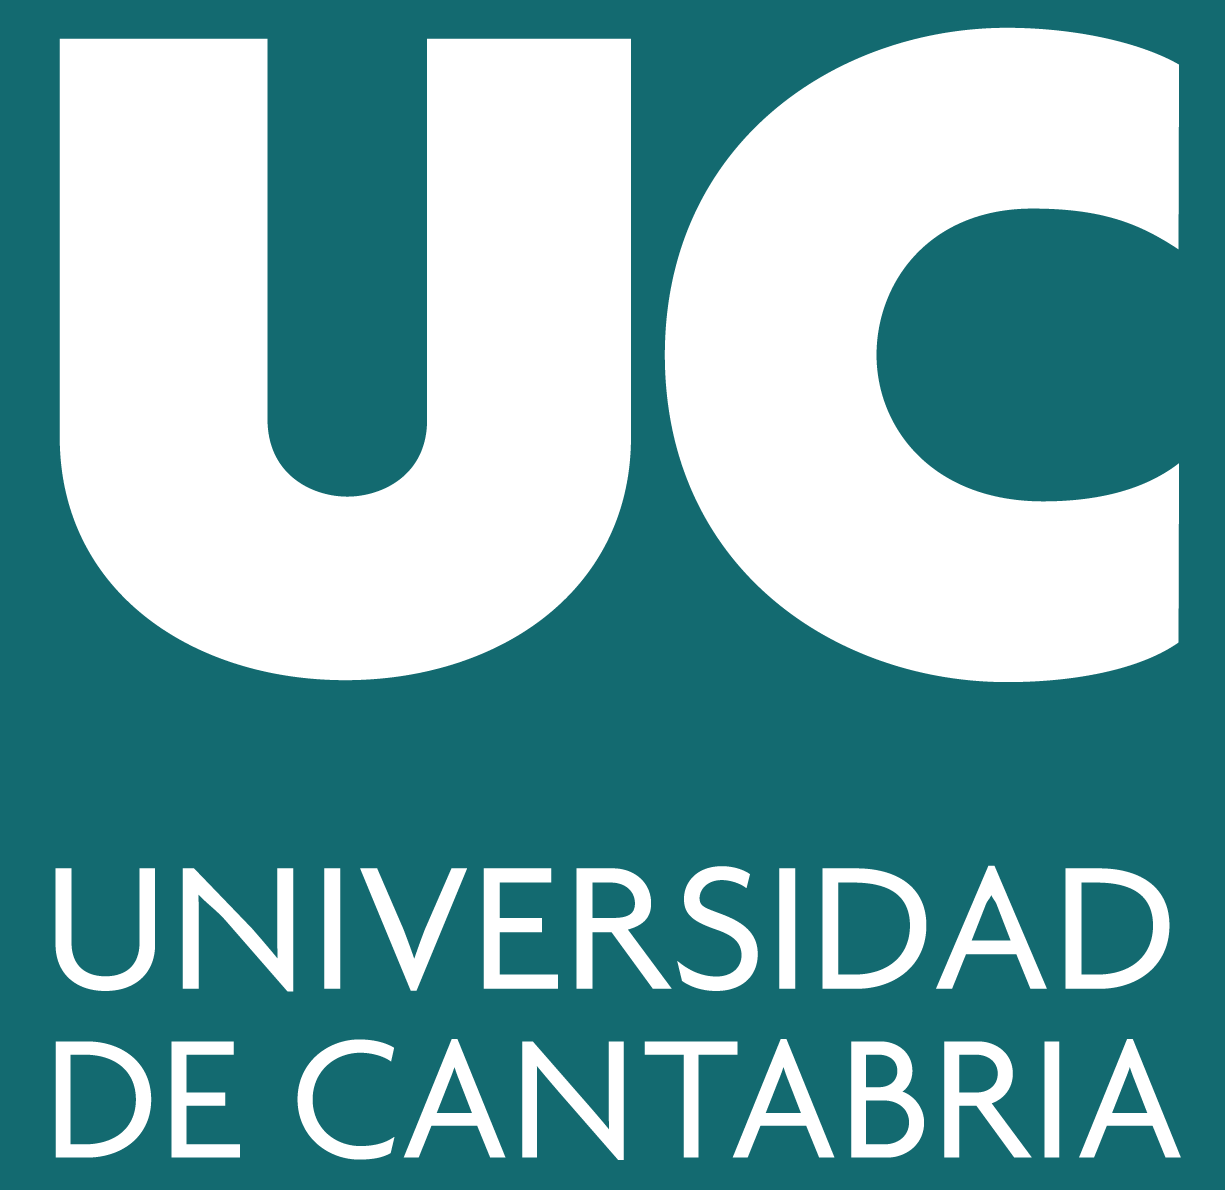 Universidad de Cantabria.